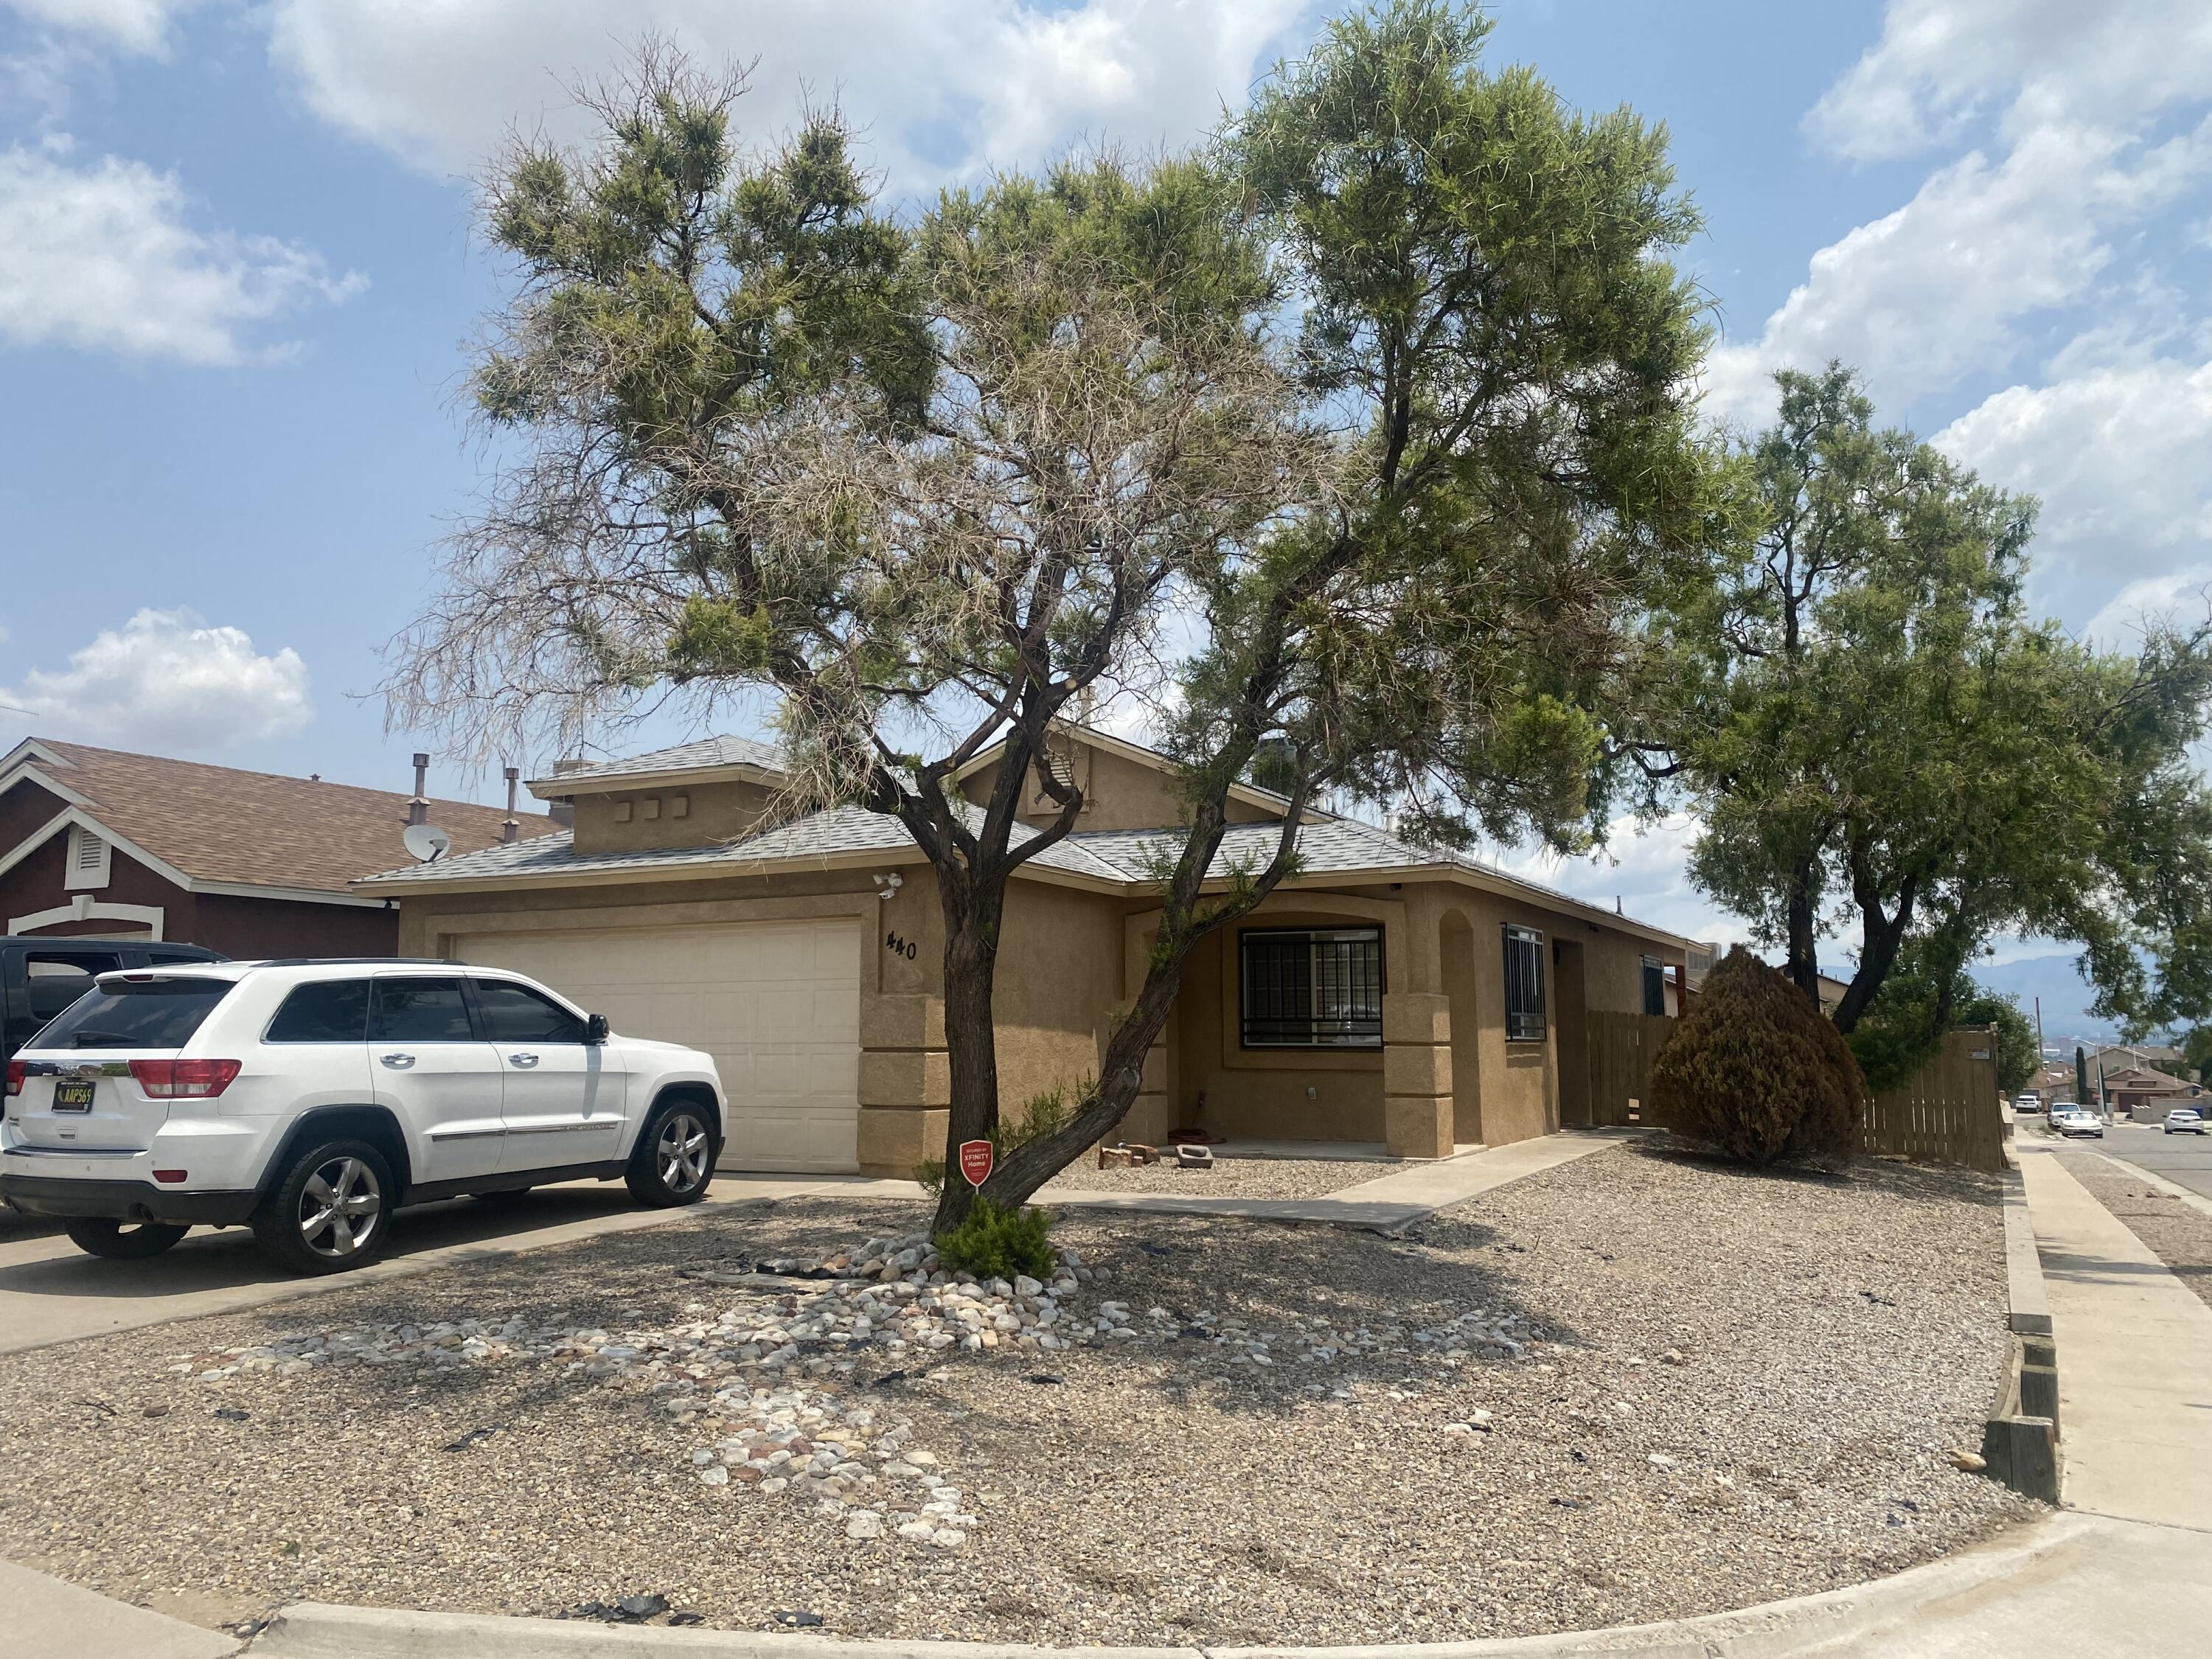 Beautiful 3 bedroom 2 bath home with vaulted ceilings on a corner lot. Must see to appreciate.